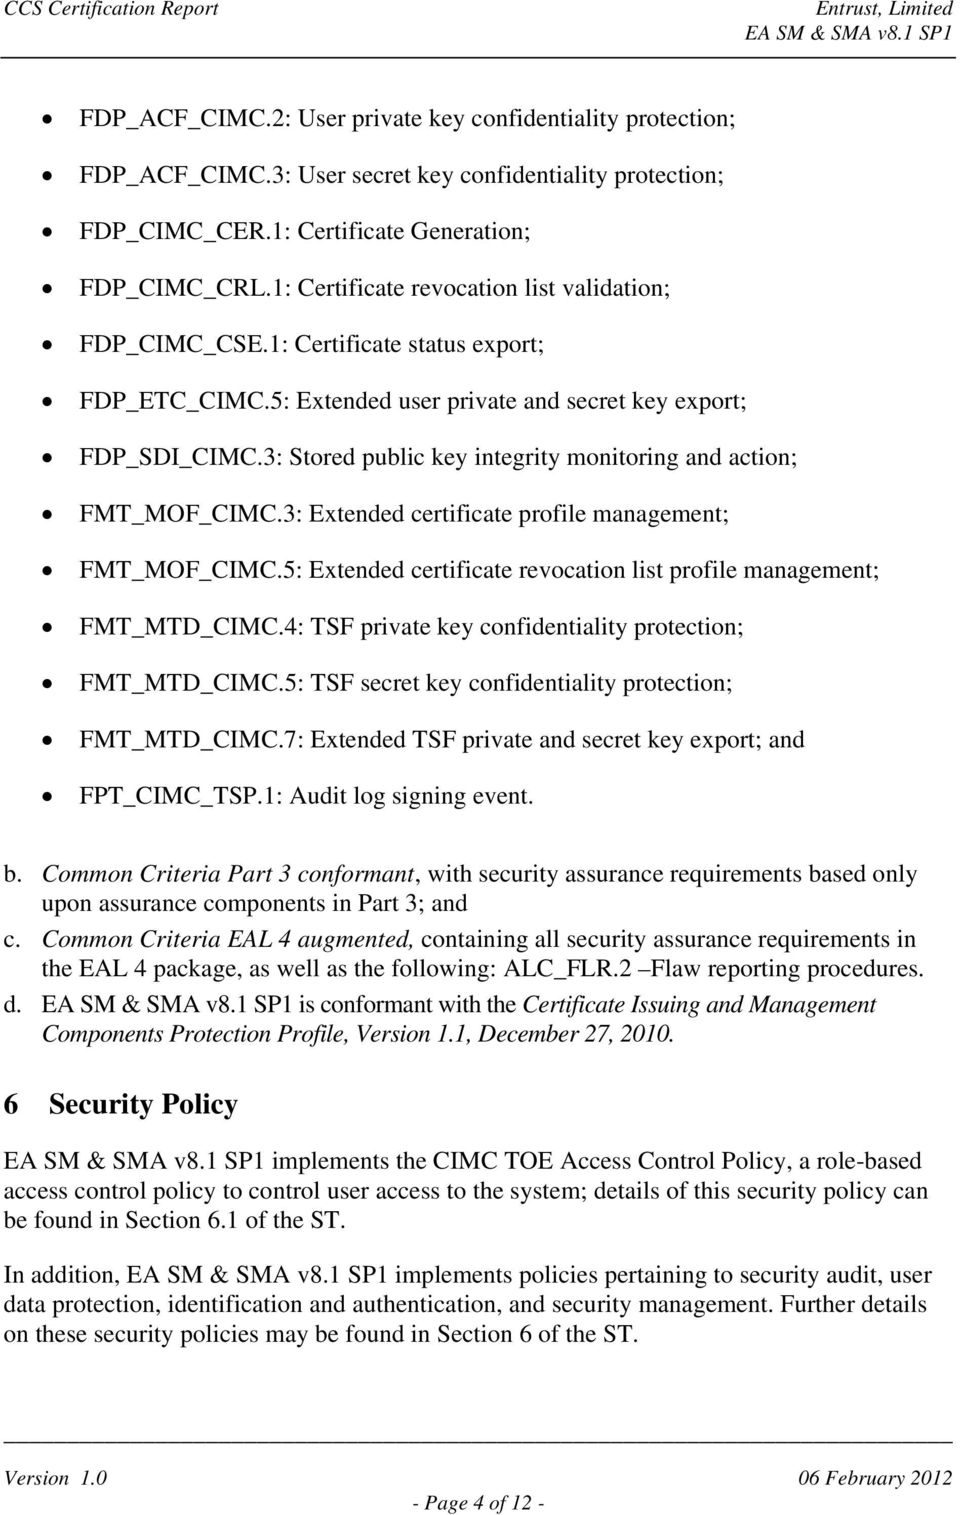 3: Stored public key integrity monitoring and action; FMT_MOF_CIMC.3: Extended certificate profile management; FMT_MOF_CIMC.5: Extended certificate revocation list profile management; FMT_MTD_CIMC.